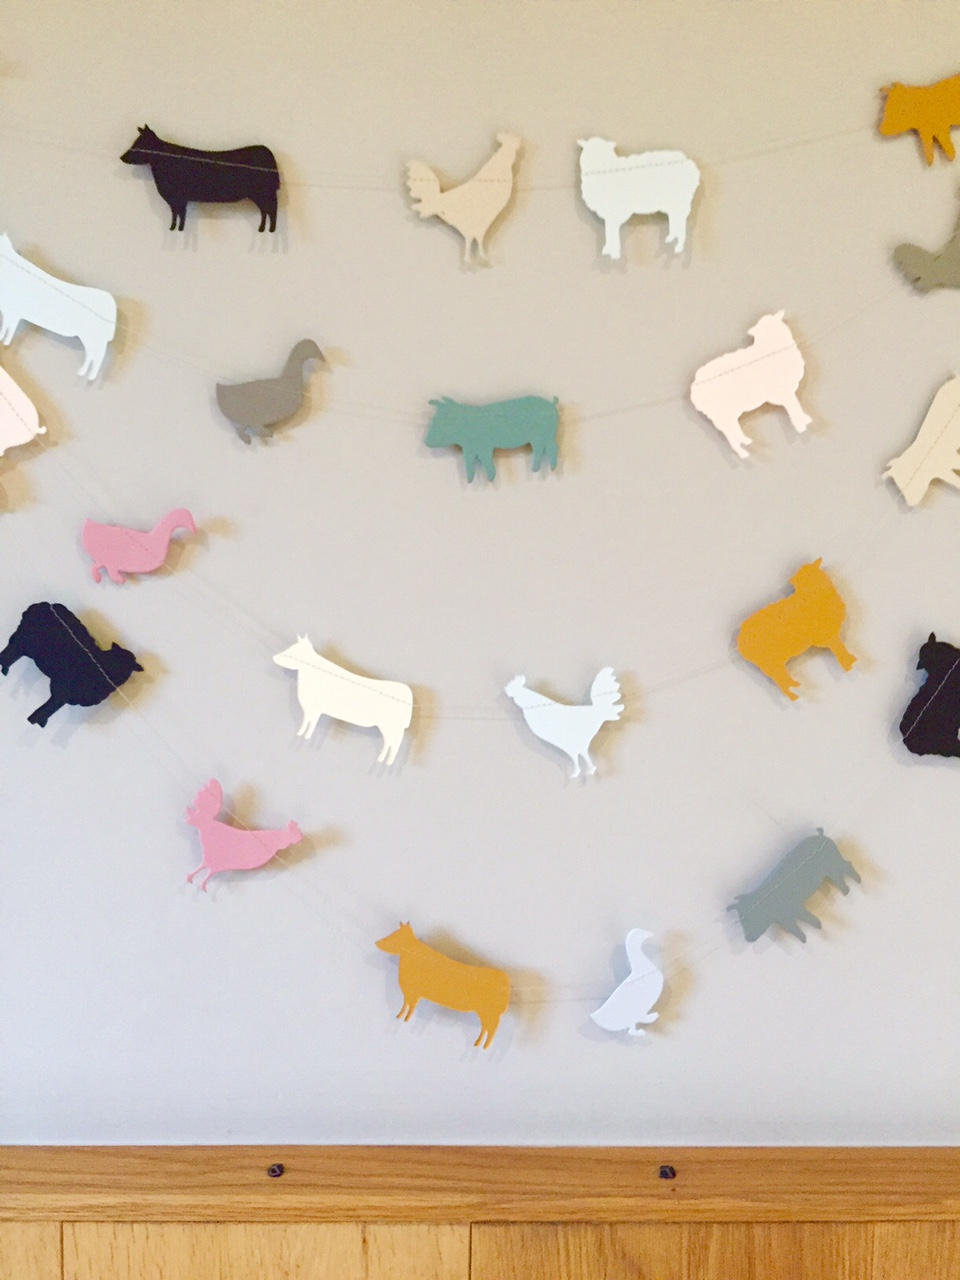 New Country Girl farm animal garland. ©2016 Kelly M. O'Brien.